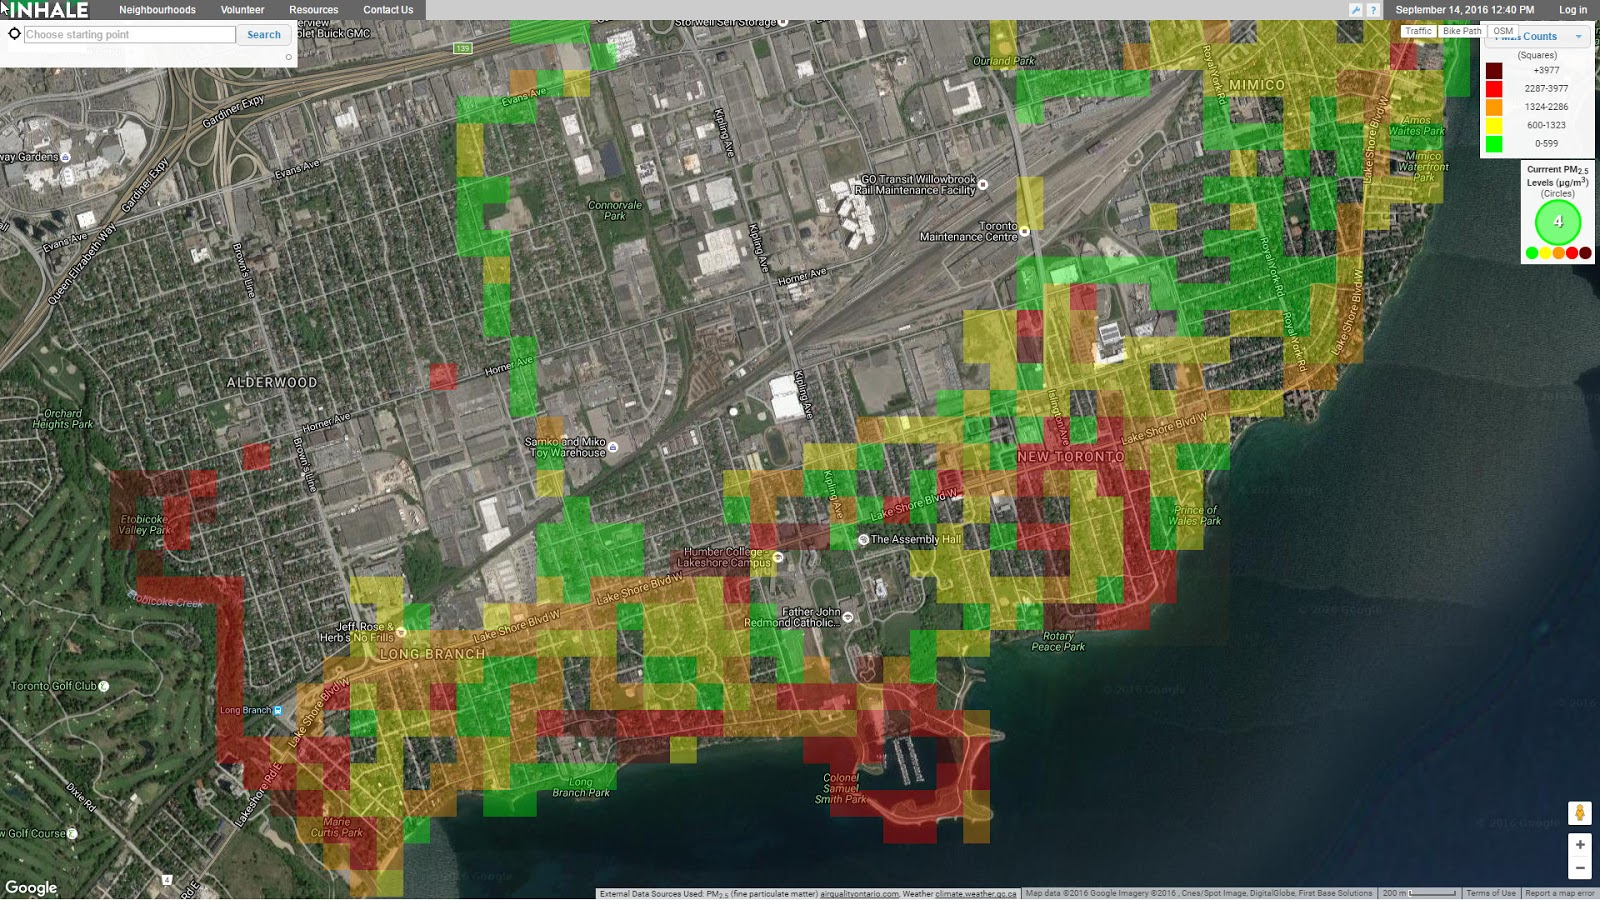 Toronto's air pollution monitoring map